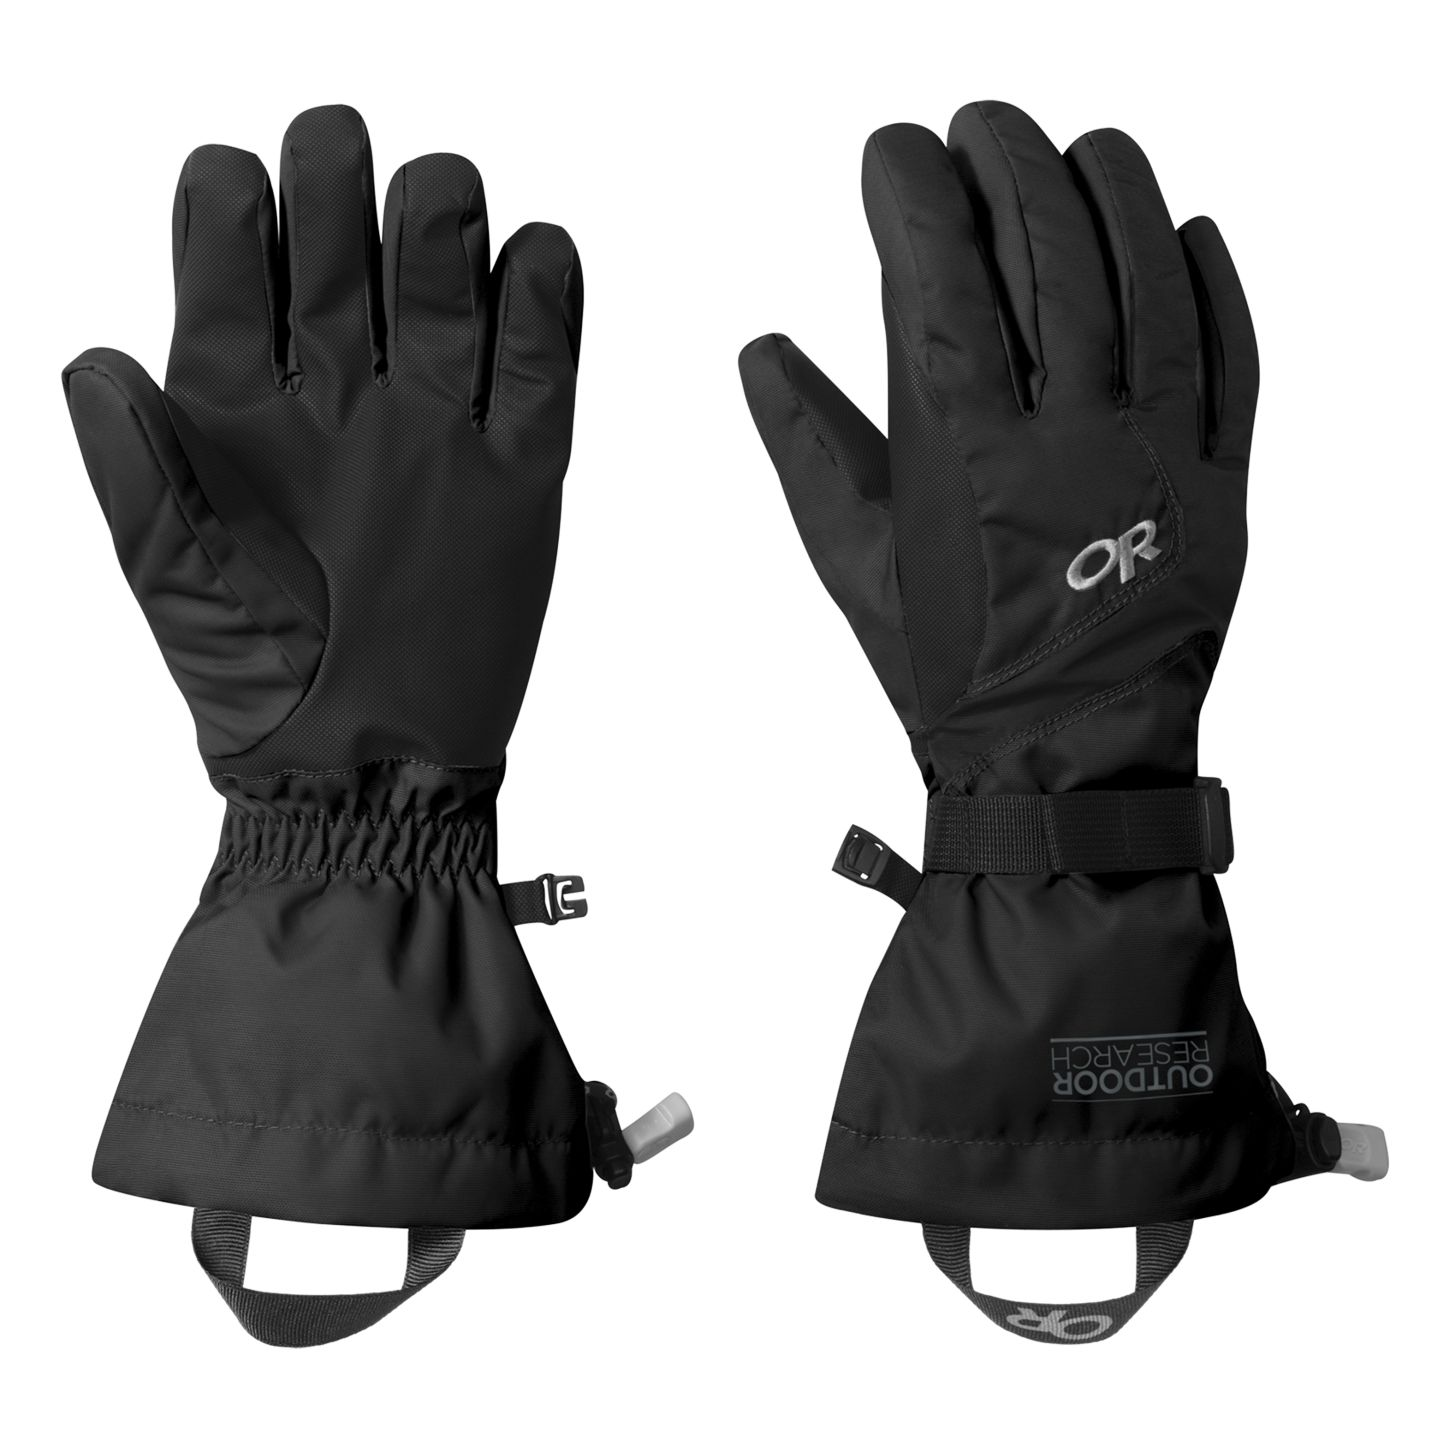 Outdoor Research Women's Adrenaline Gloves black-30